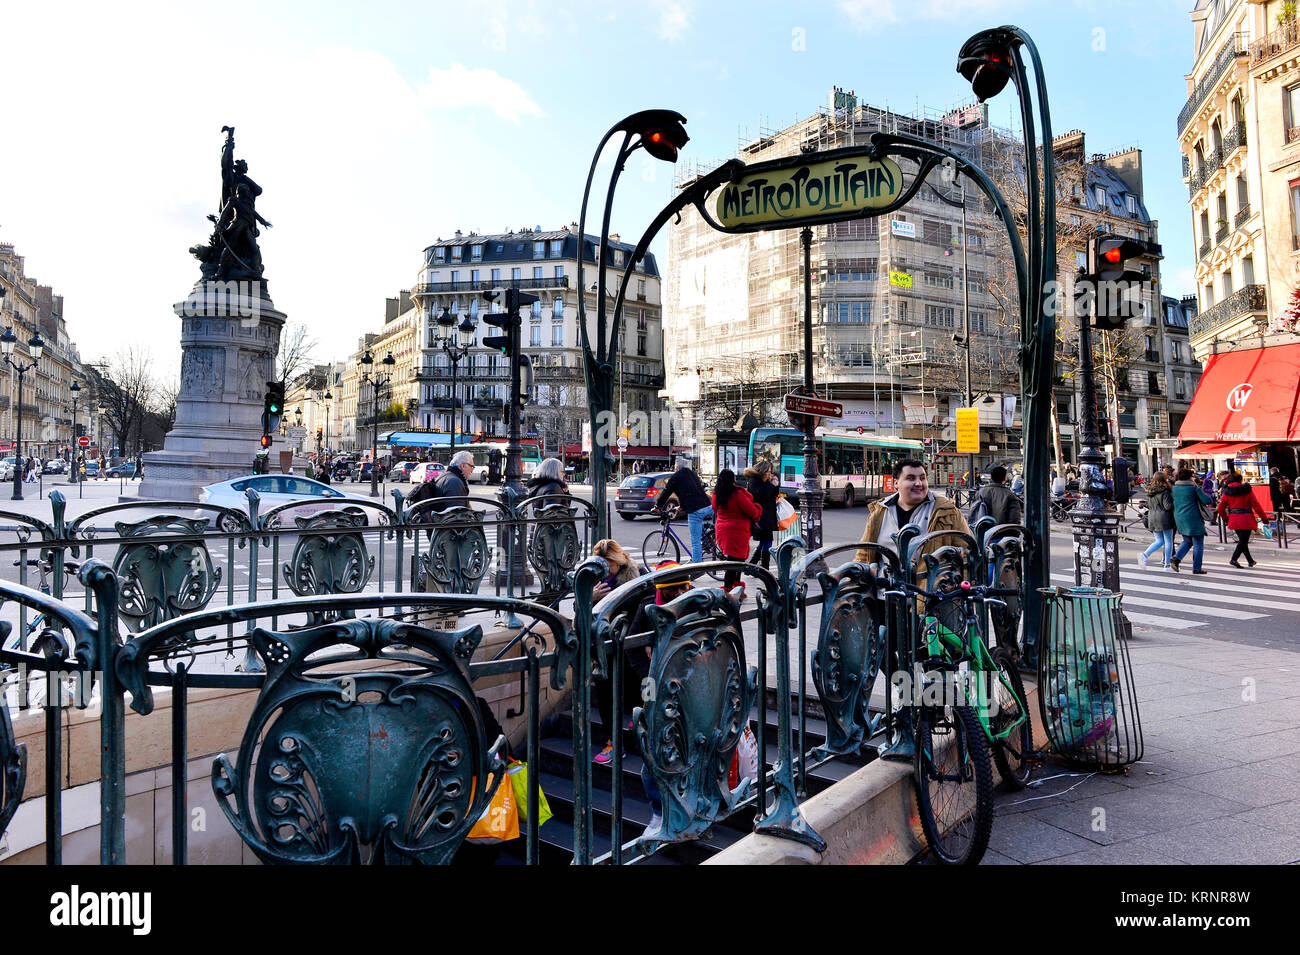 Street Clichy Paris Stock Photos & Street Clichy Paris Stock Images ...